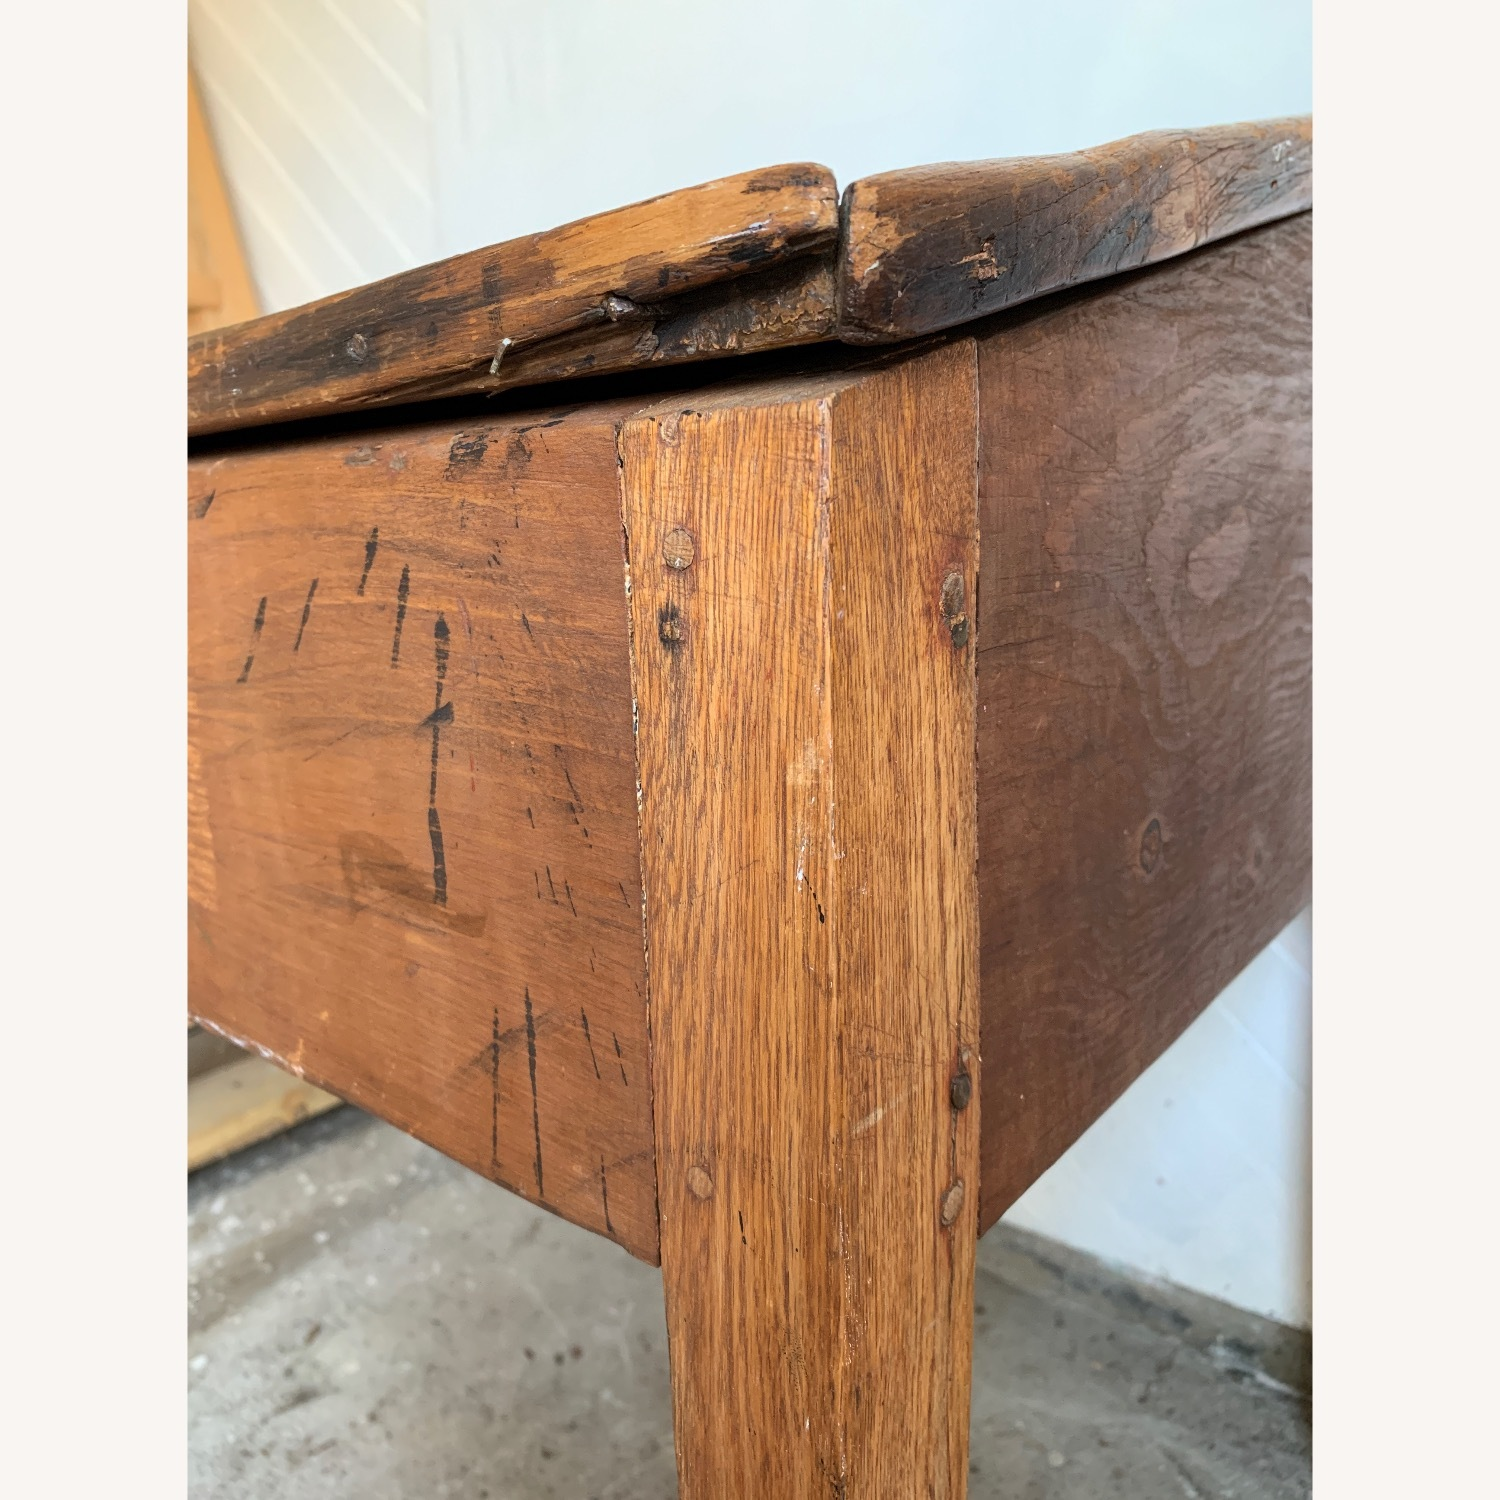 Antique Wooden Slant-top Desk with Storage - image-7